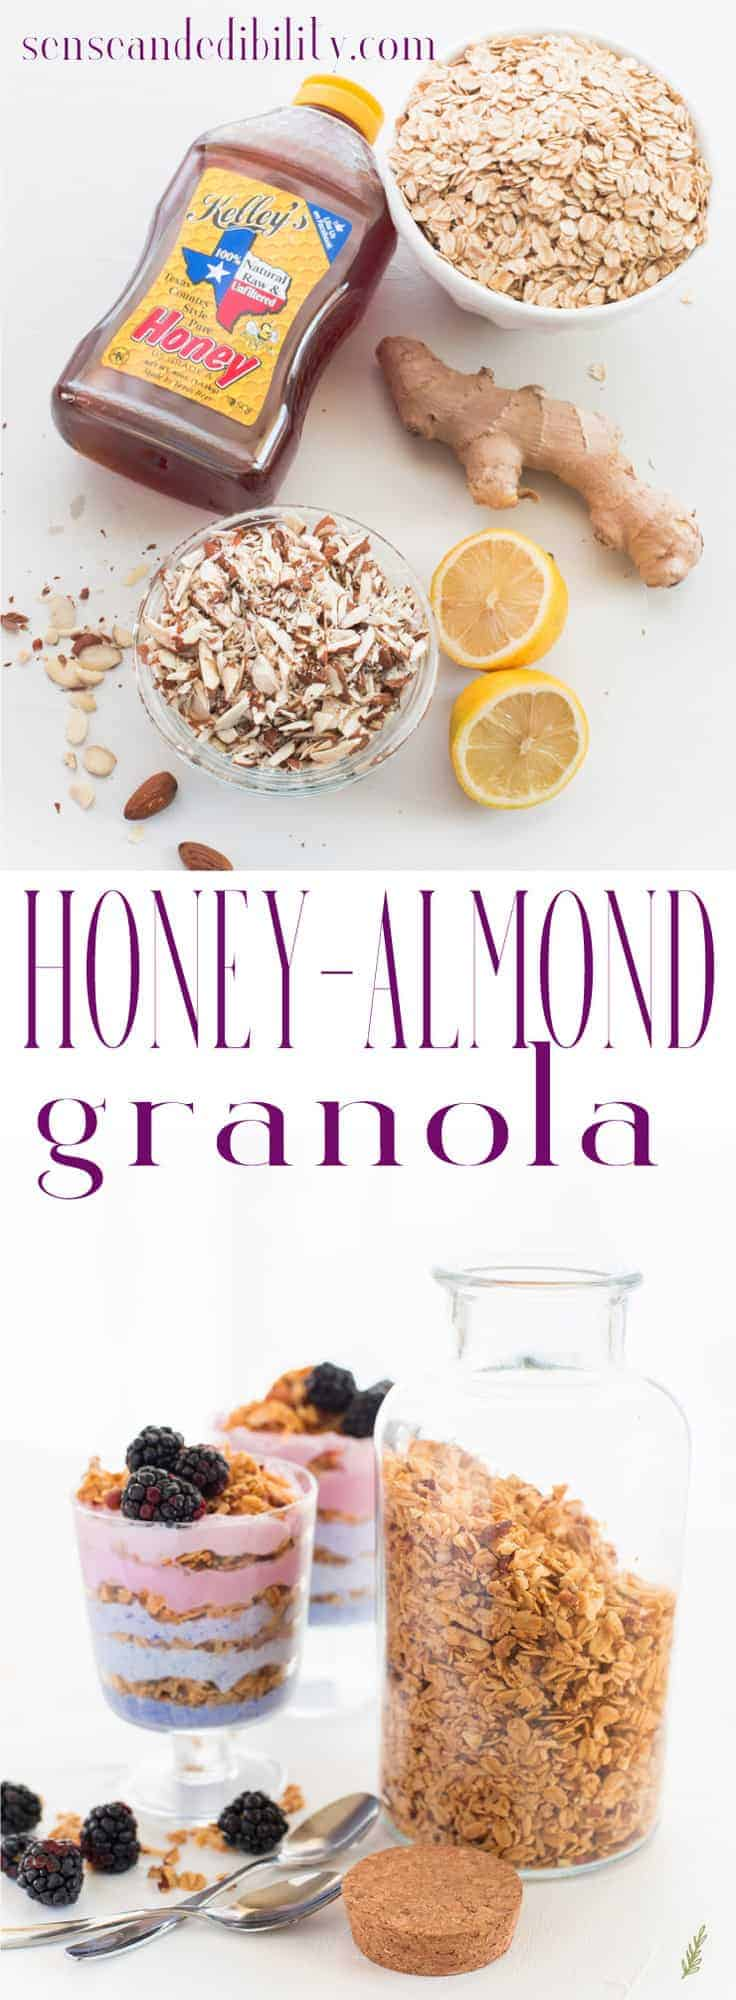 Sense & Edibility's Honey-Almond Granola Pin